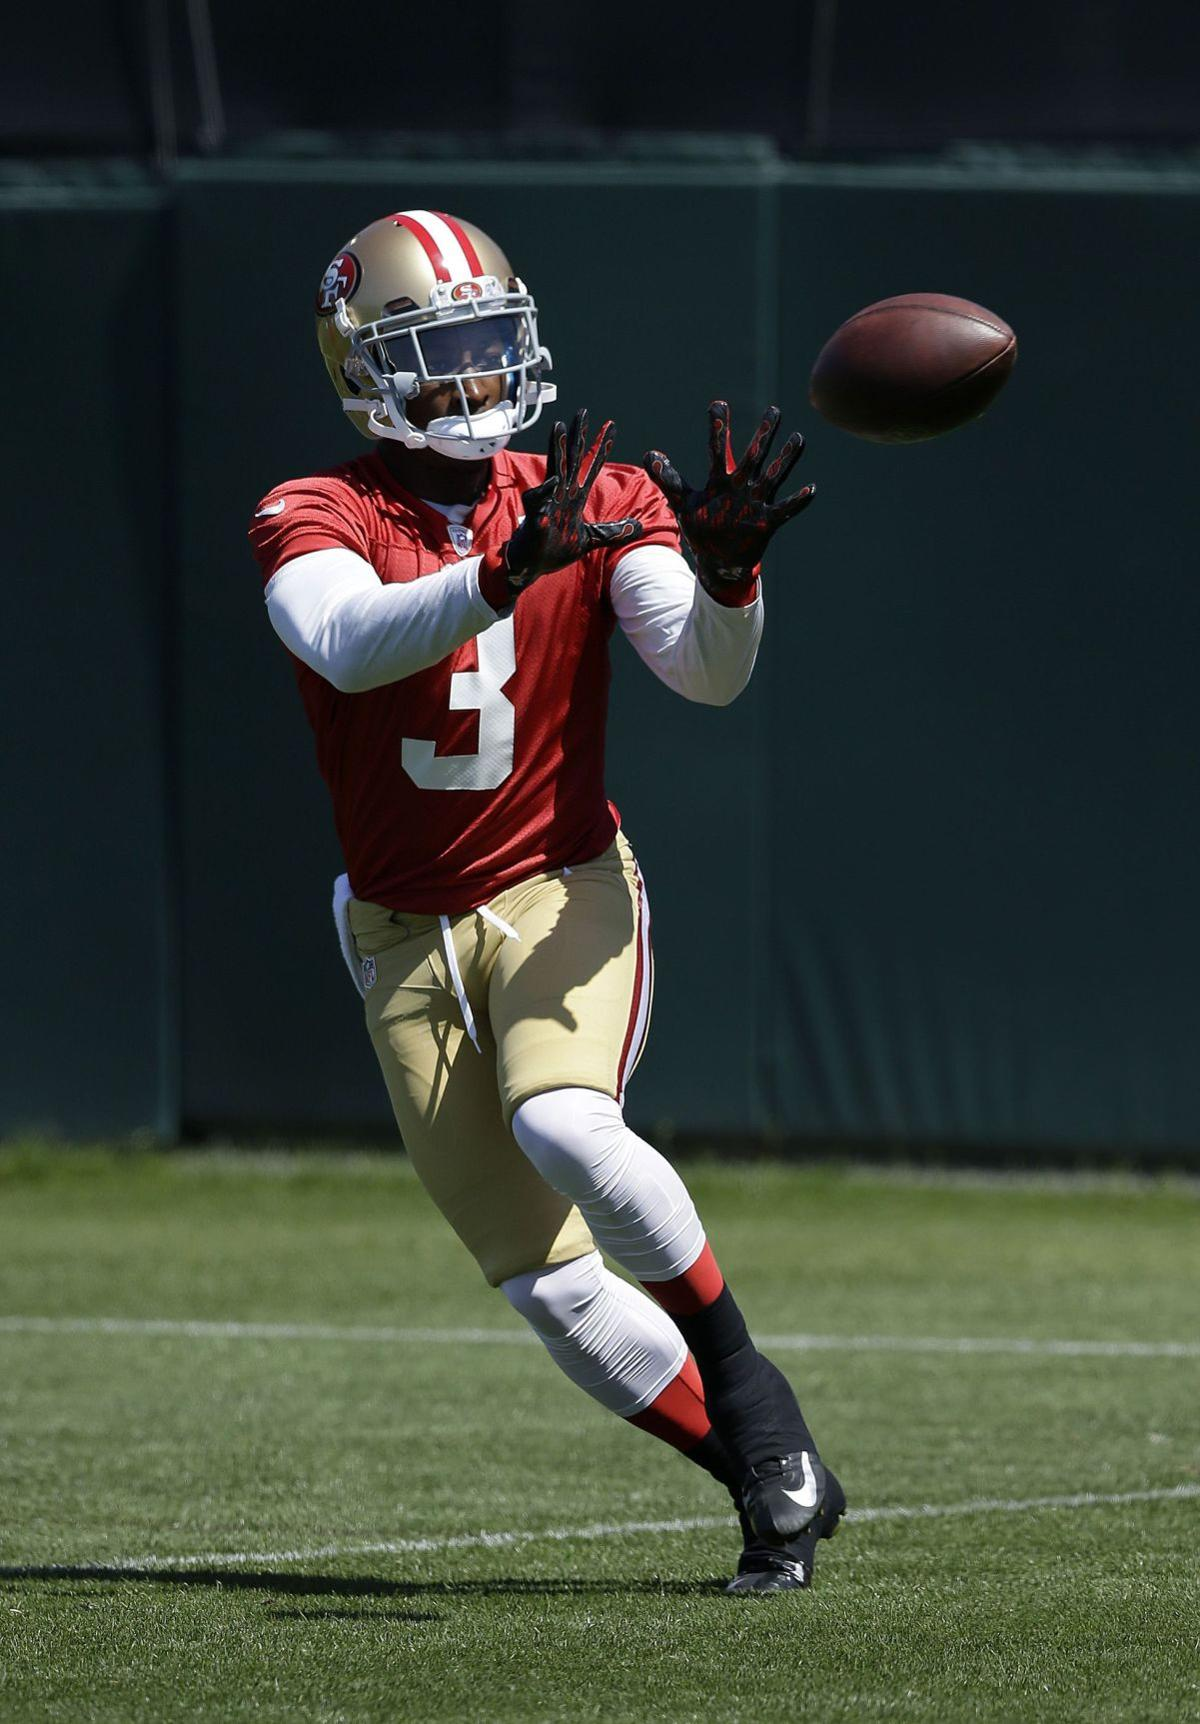 Former Gamecocks WR Bruce Ellington dazzles for 49ers in NFL preseason debut